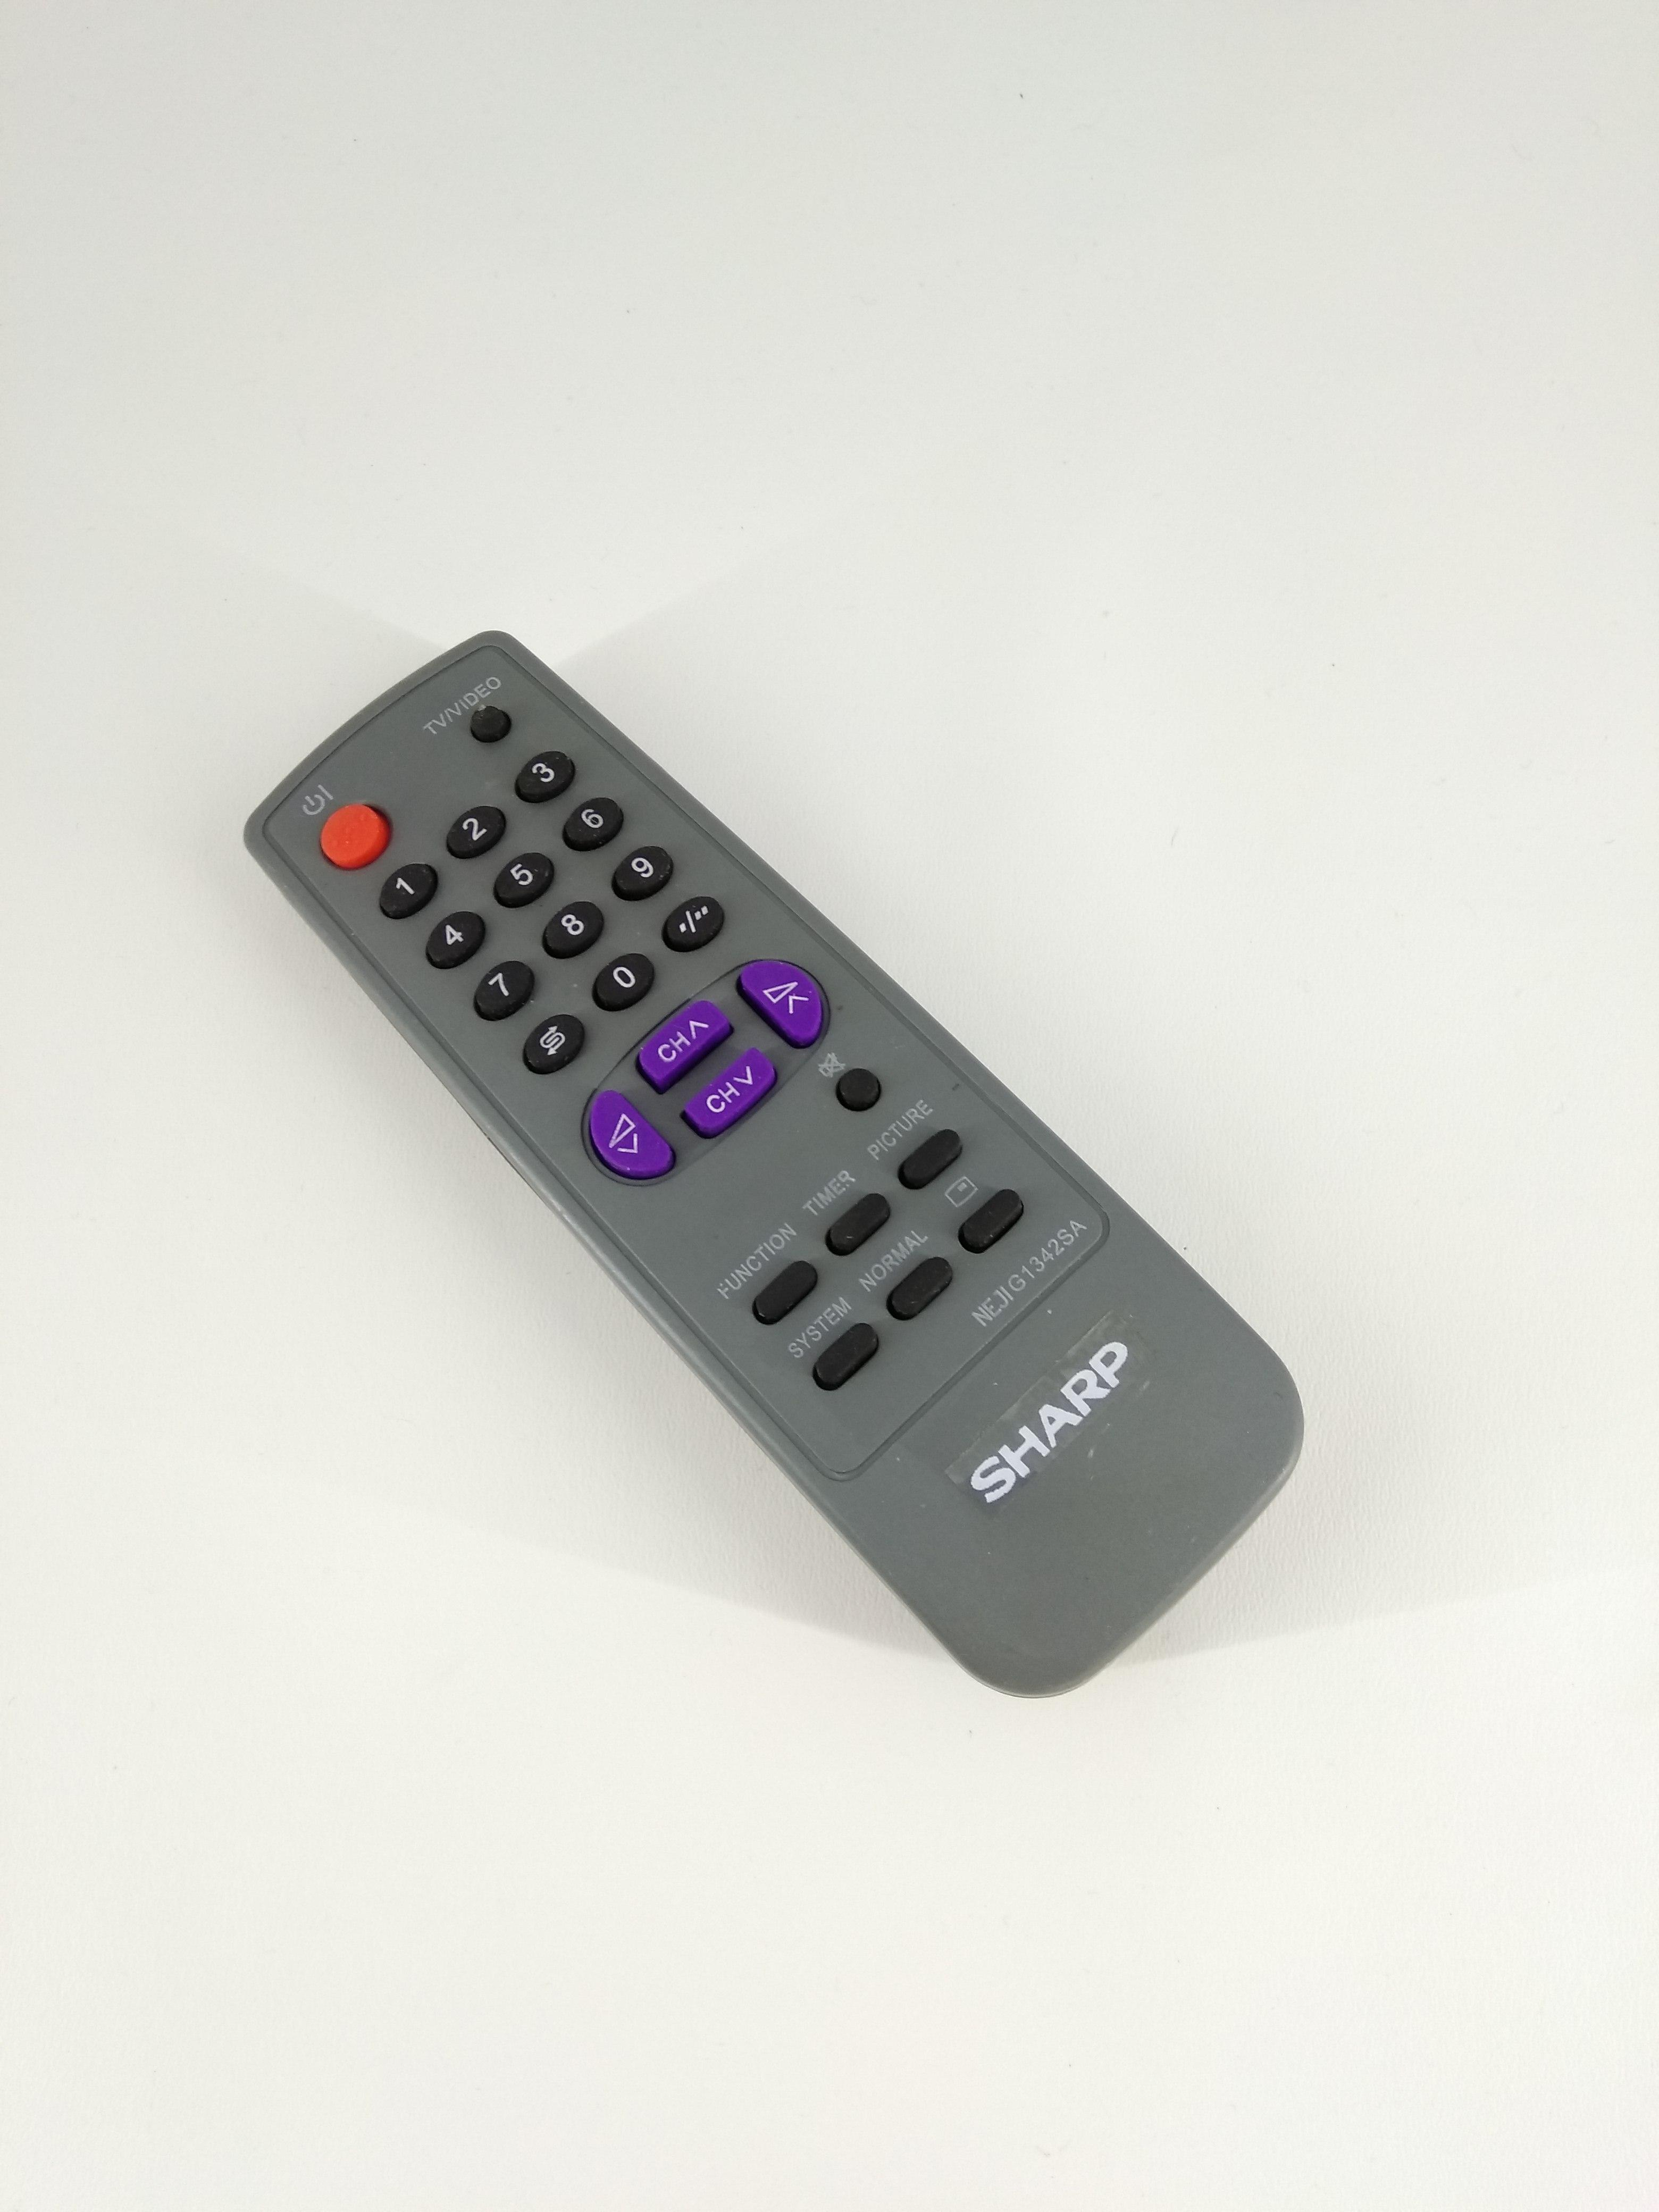 Review Remot Remote Receiver Stb Usee Tv Indihome Speedy Tv Zte